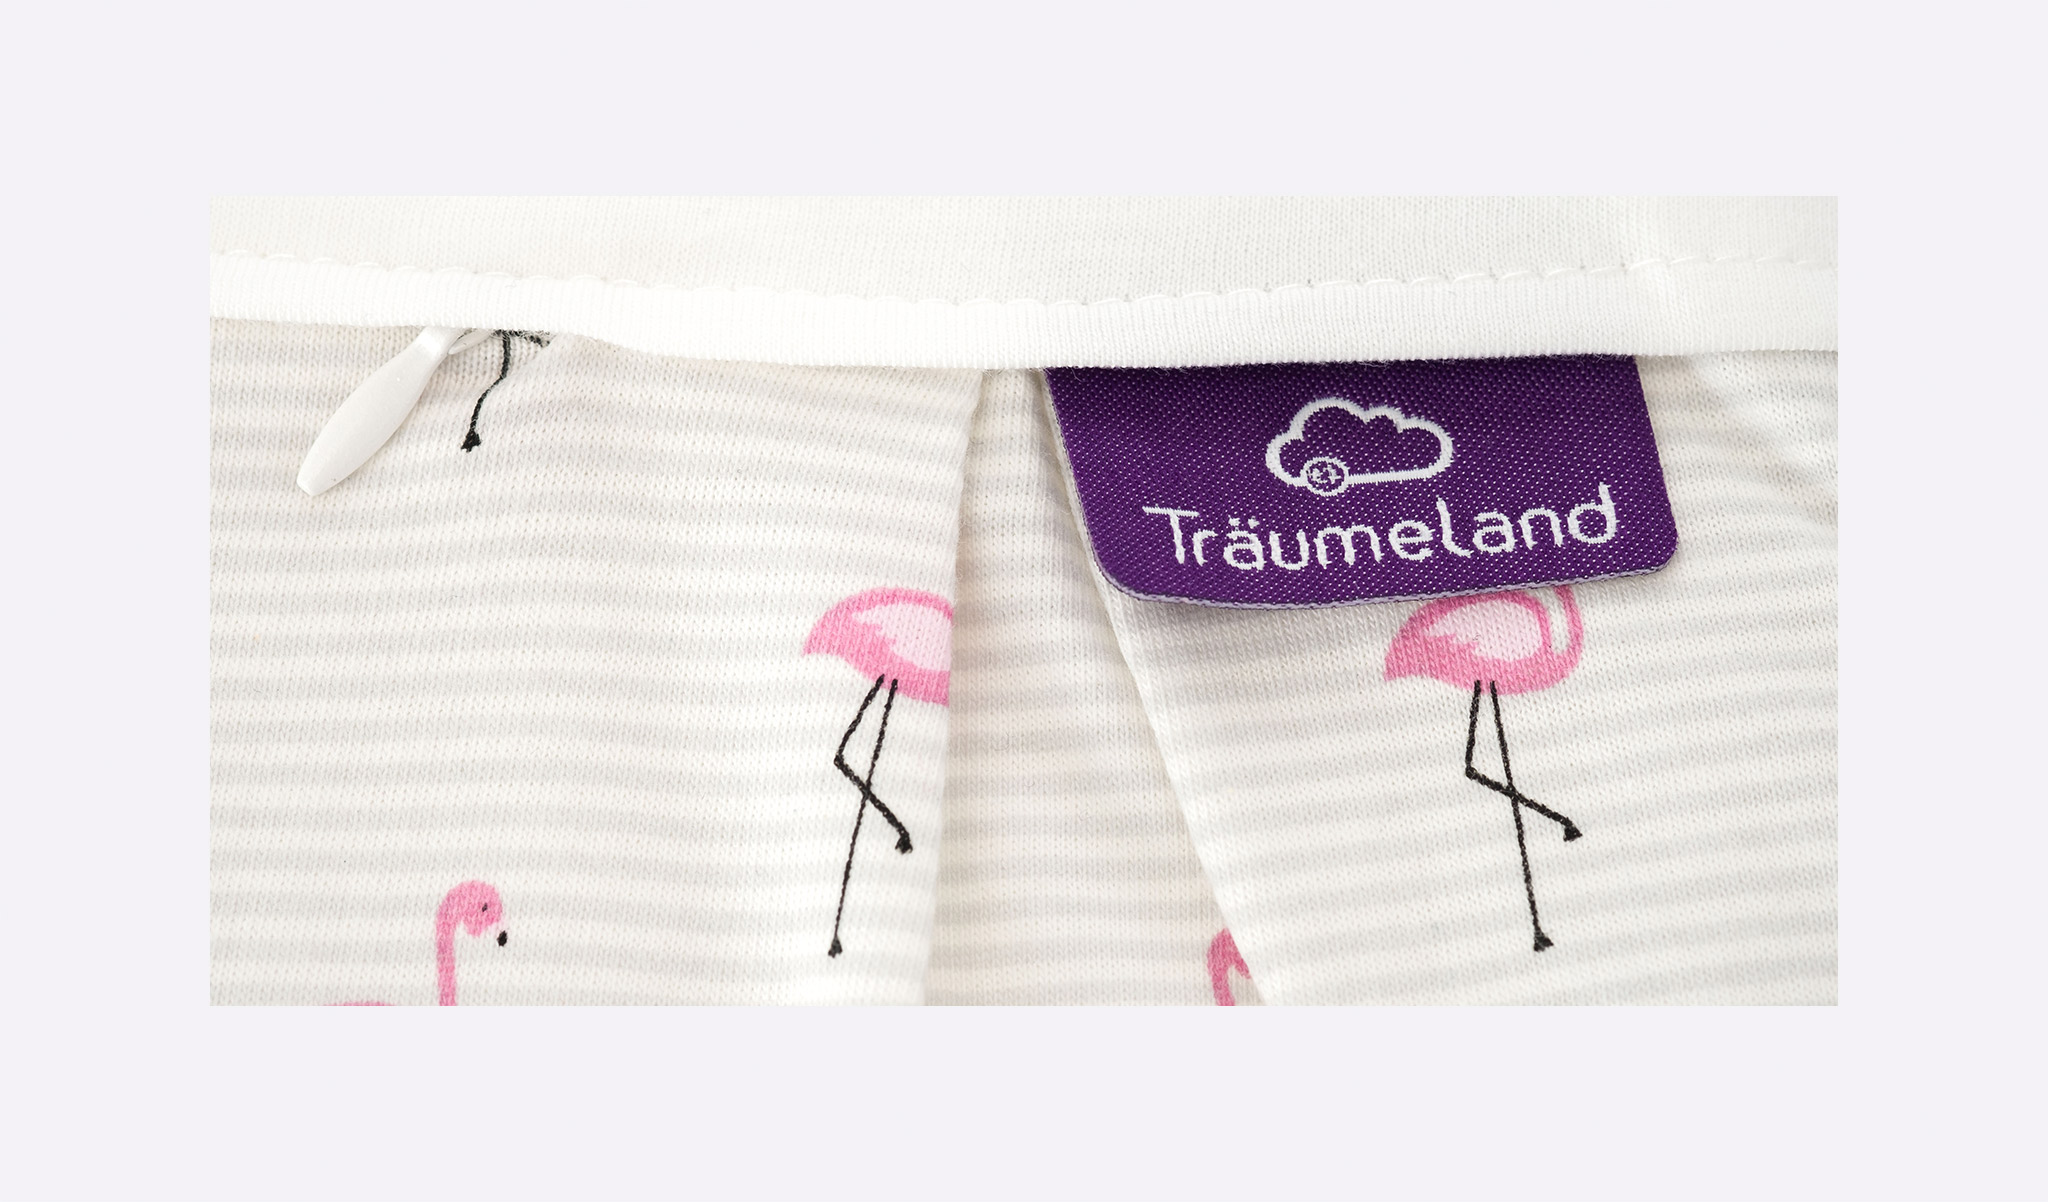 S0102552 - sleeping bag set flamingo